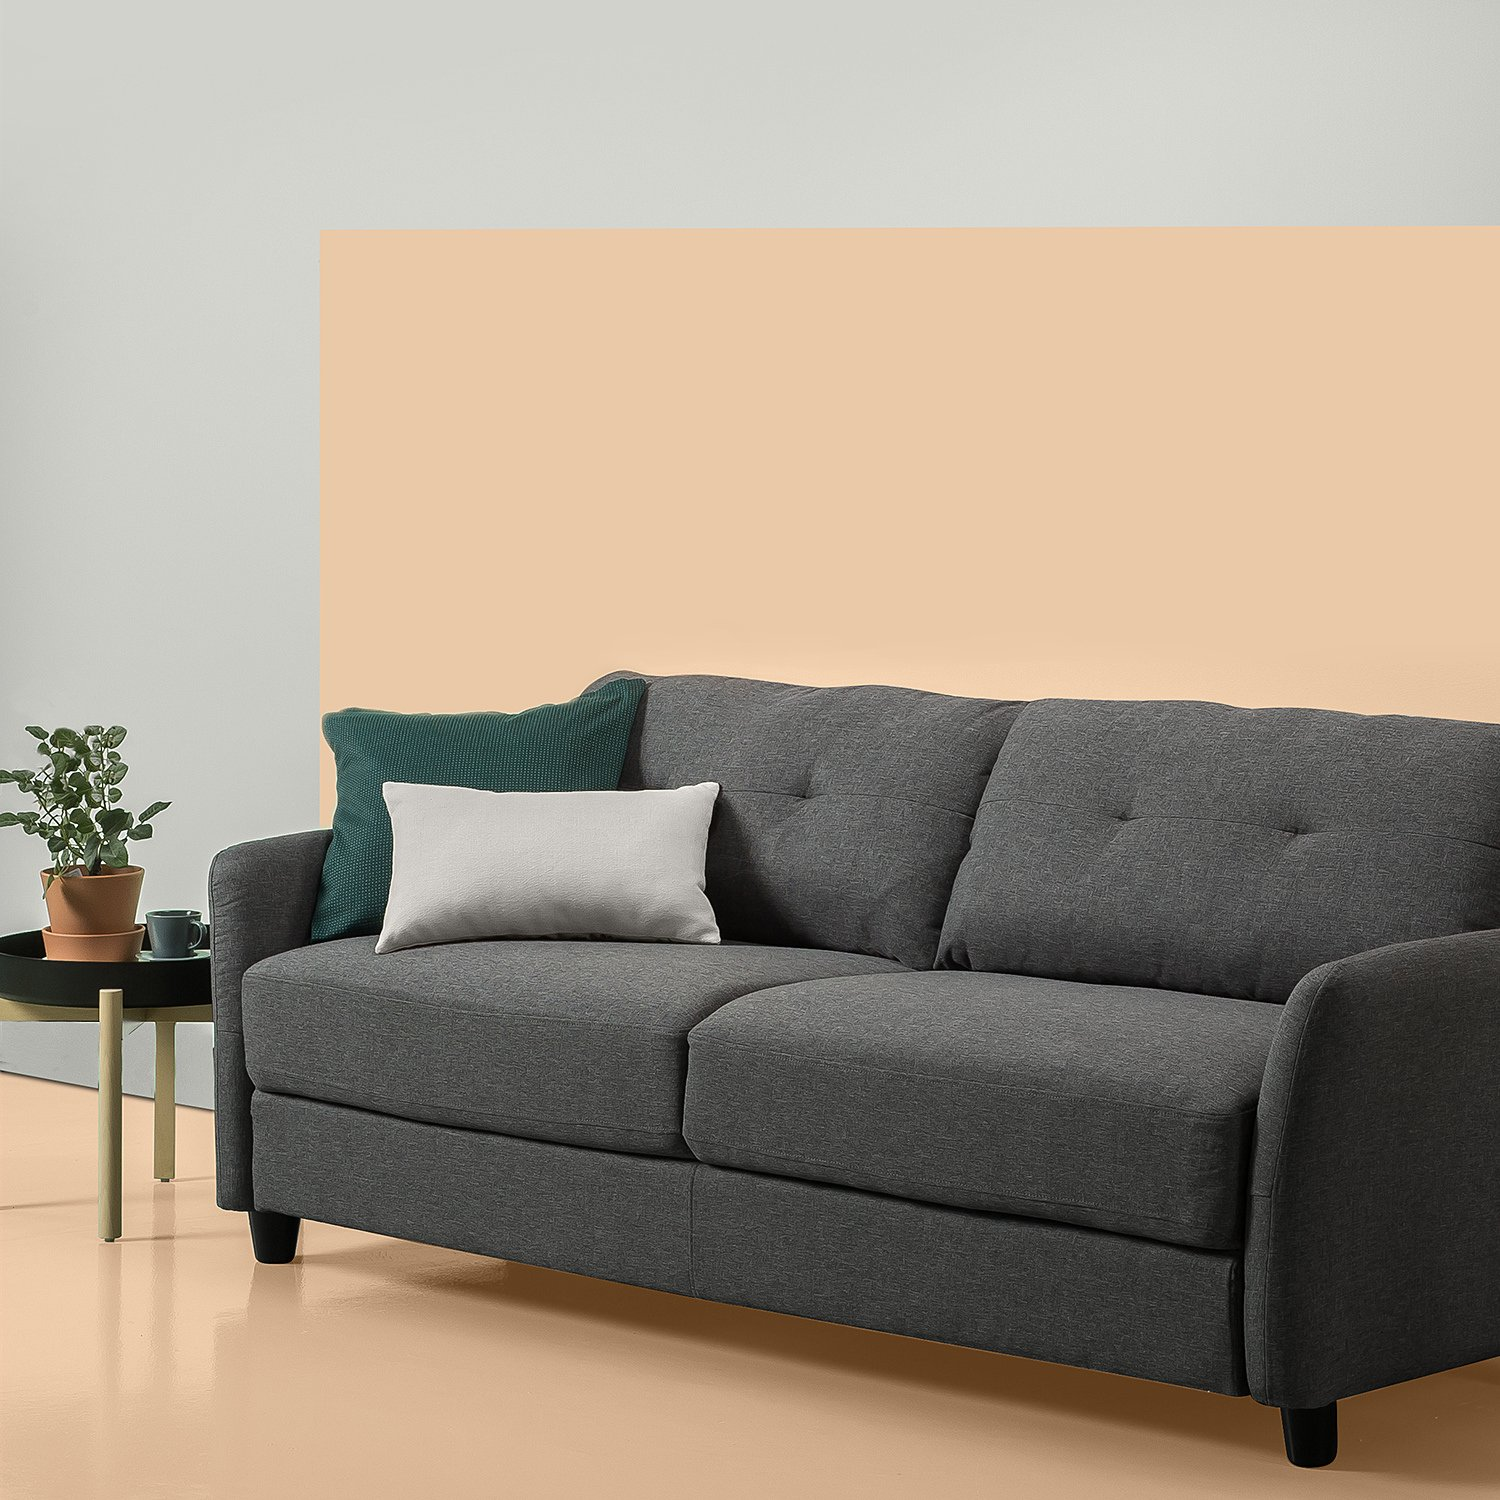 Where To Buy Cheap Sofas: Best Rated In Sofas & Couches & Helpful Customer Reviews